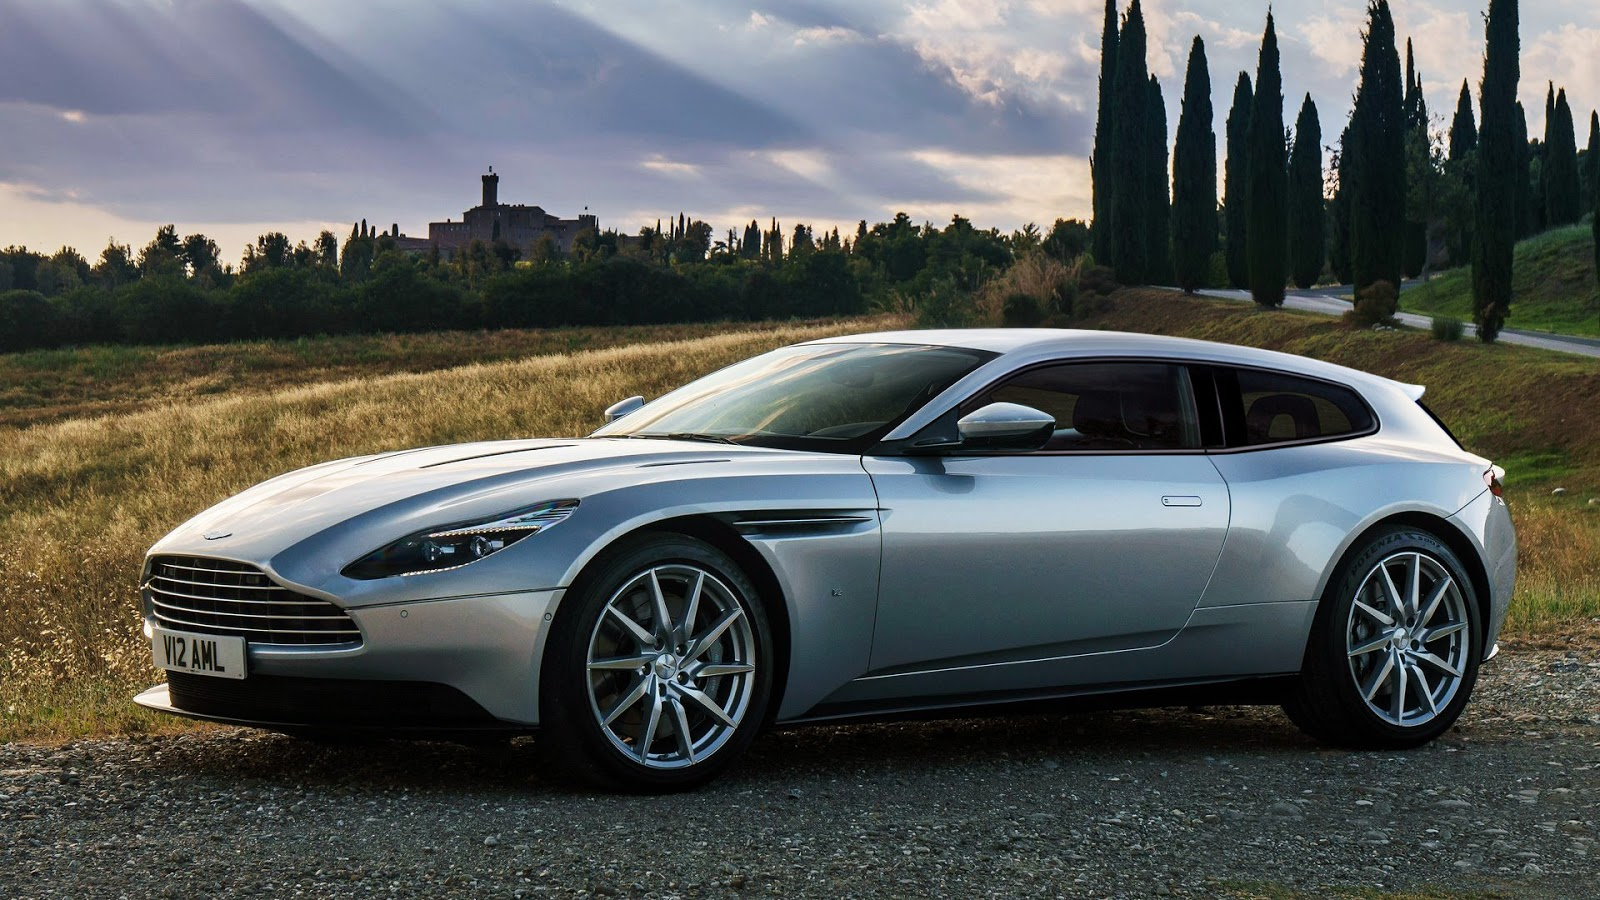 X-Tomi Design: Aston Martin DB11 ShootingBrake